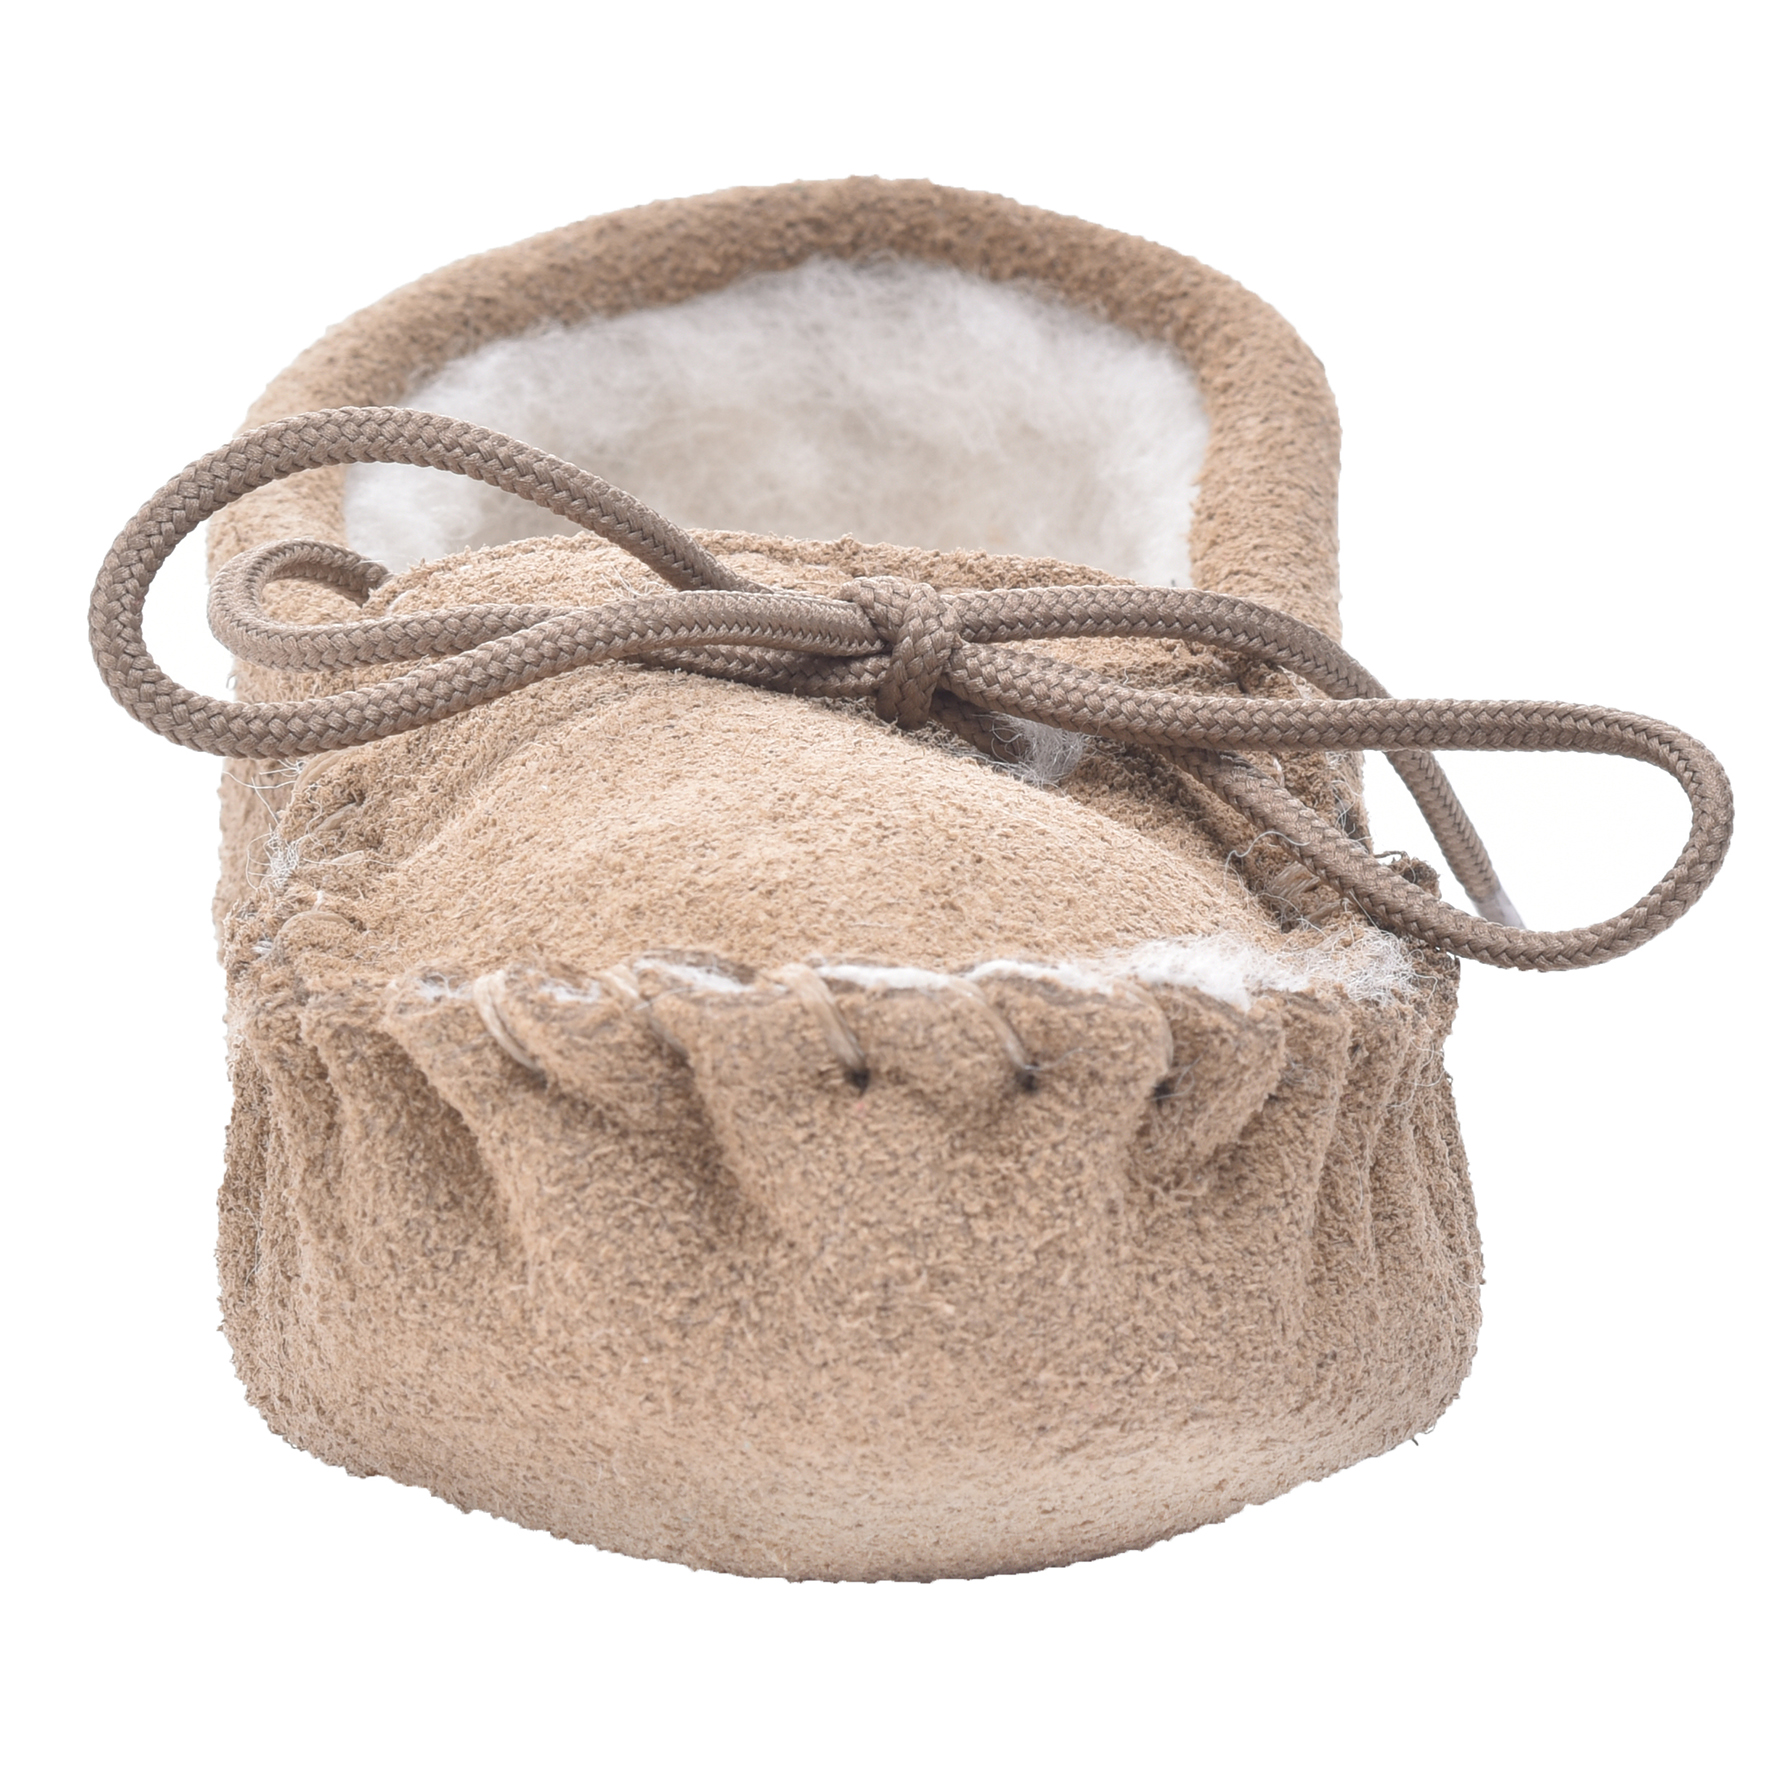 Childrens Sheepskin Moccasin Slippers British Made with Soft Sole by Lambland